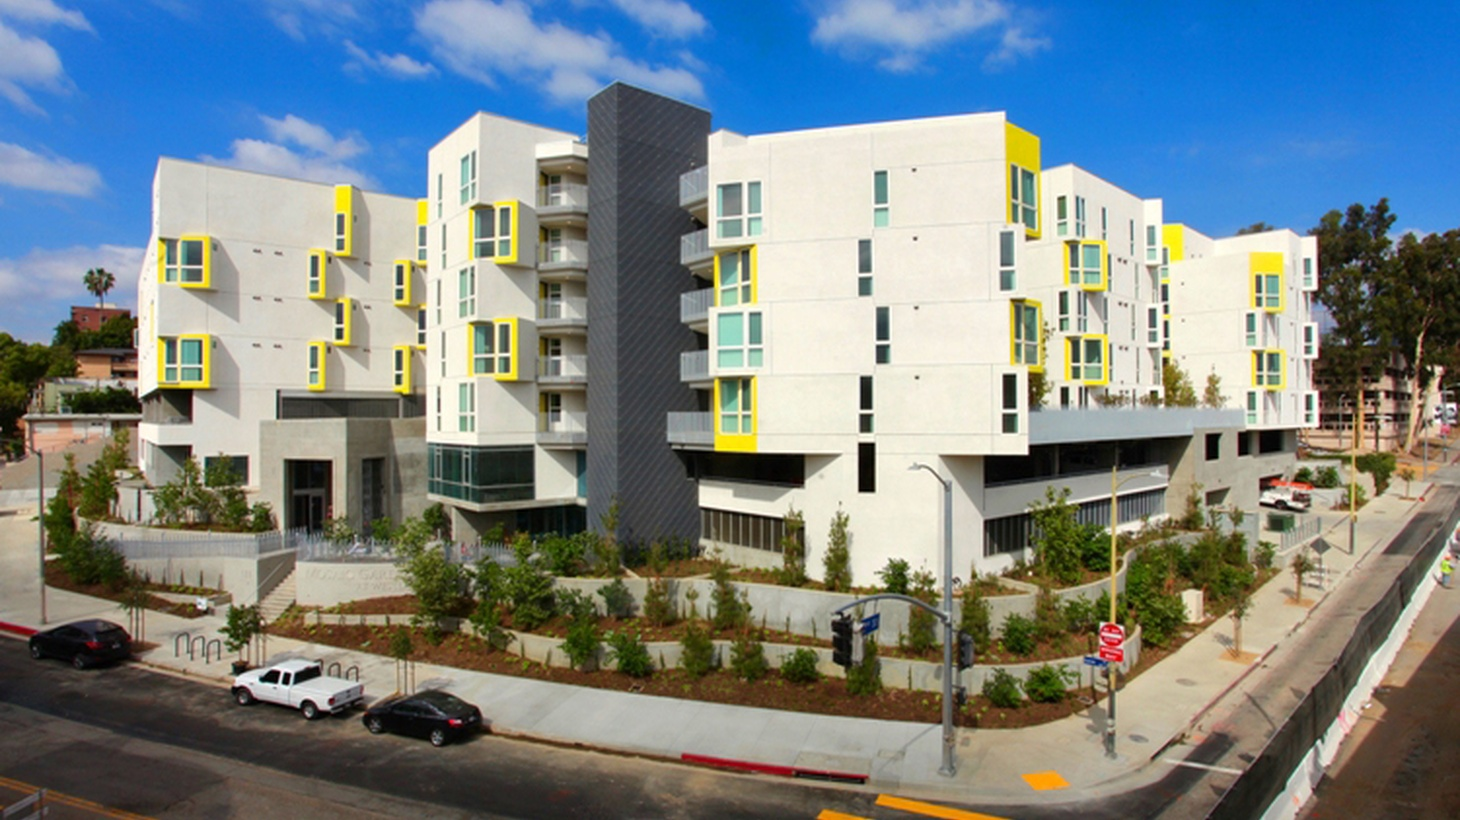 A new supportive housing complex opened last week for formerly homeless families, low-income people and seniors.